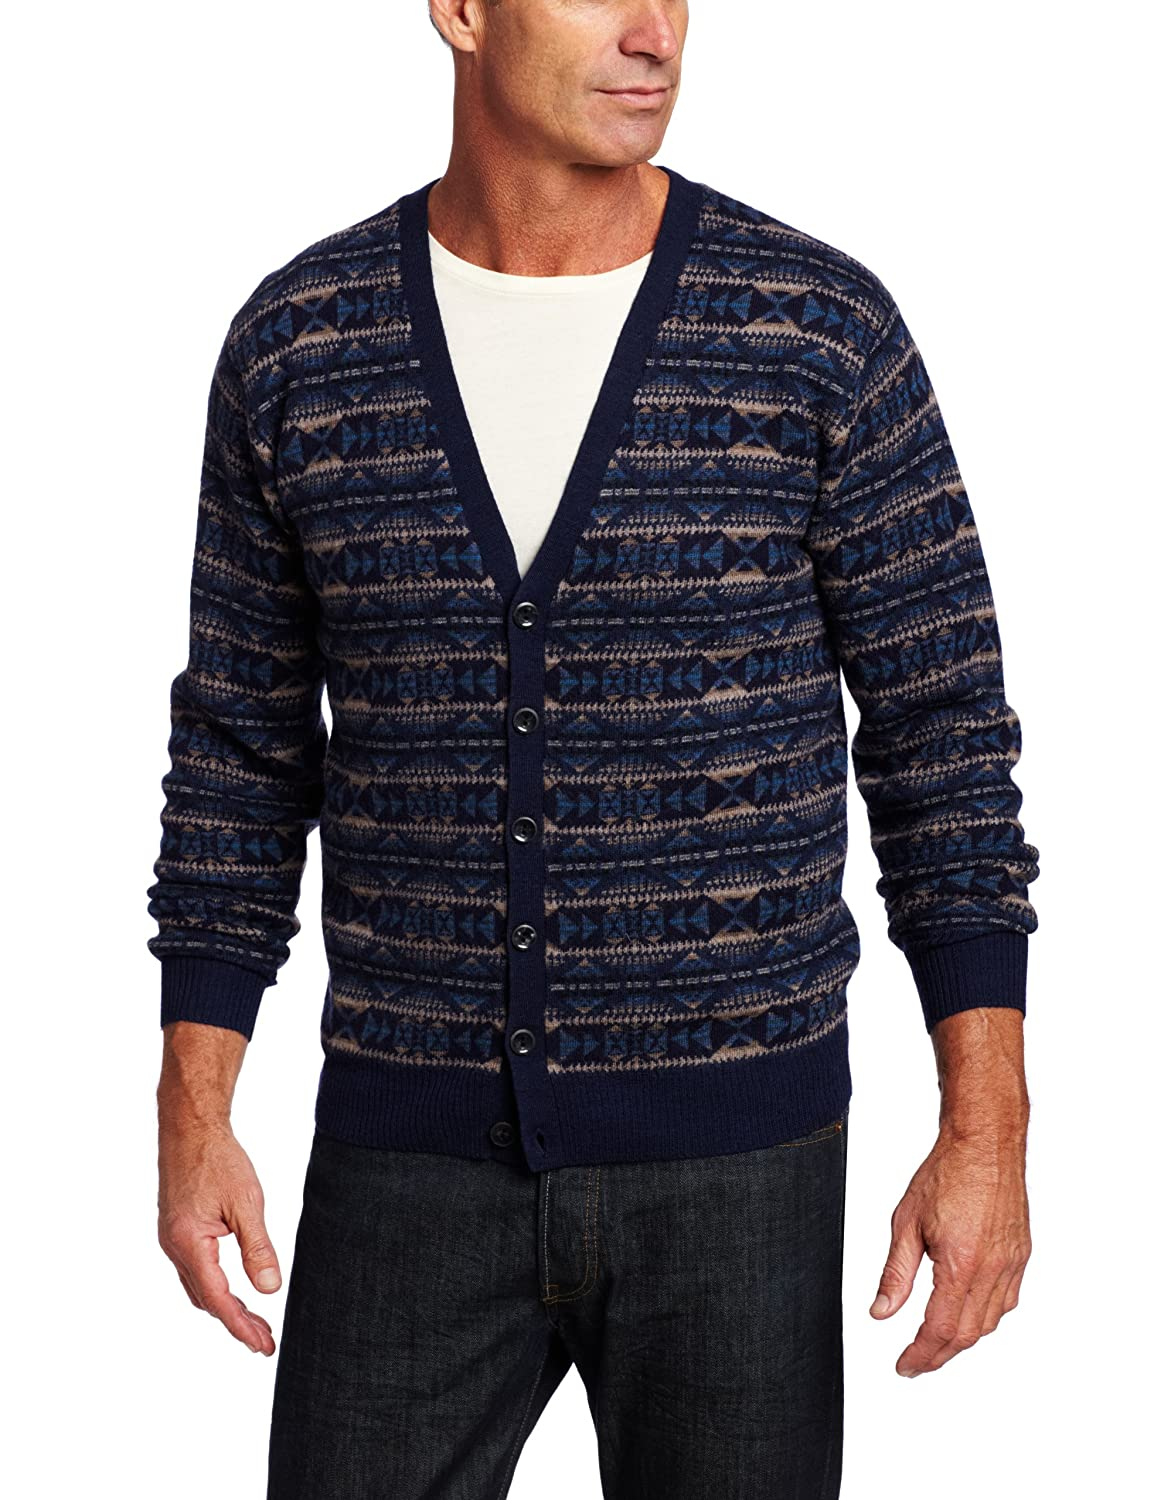 1950s Men's Clothing Pendleton Mens Blue Yavapai Jacquard Cardigan Sweater $128.91 AT vintagedancer.com